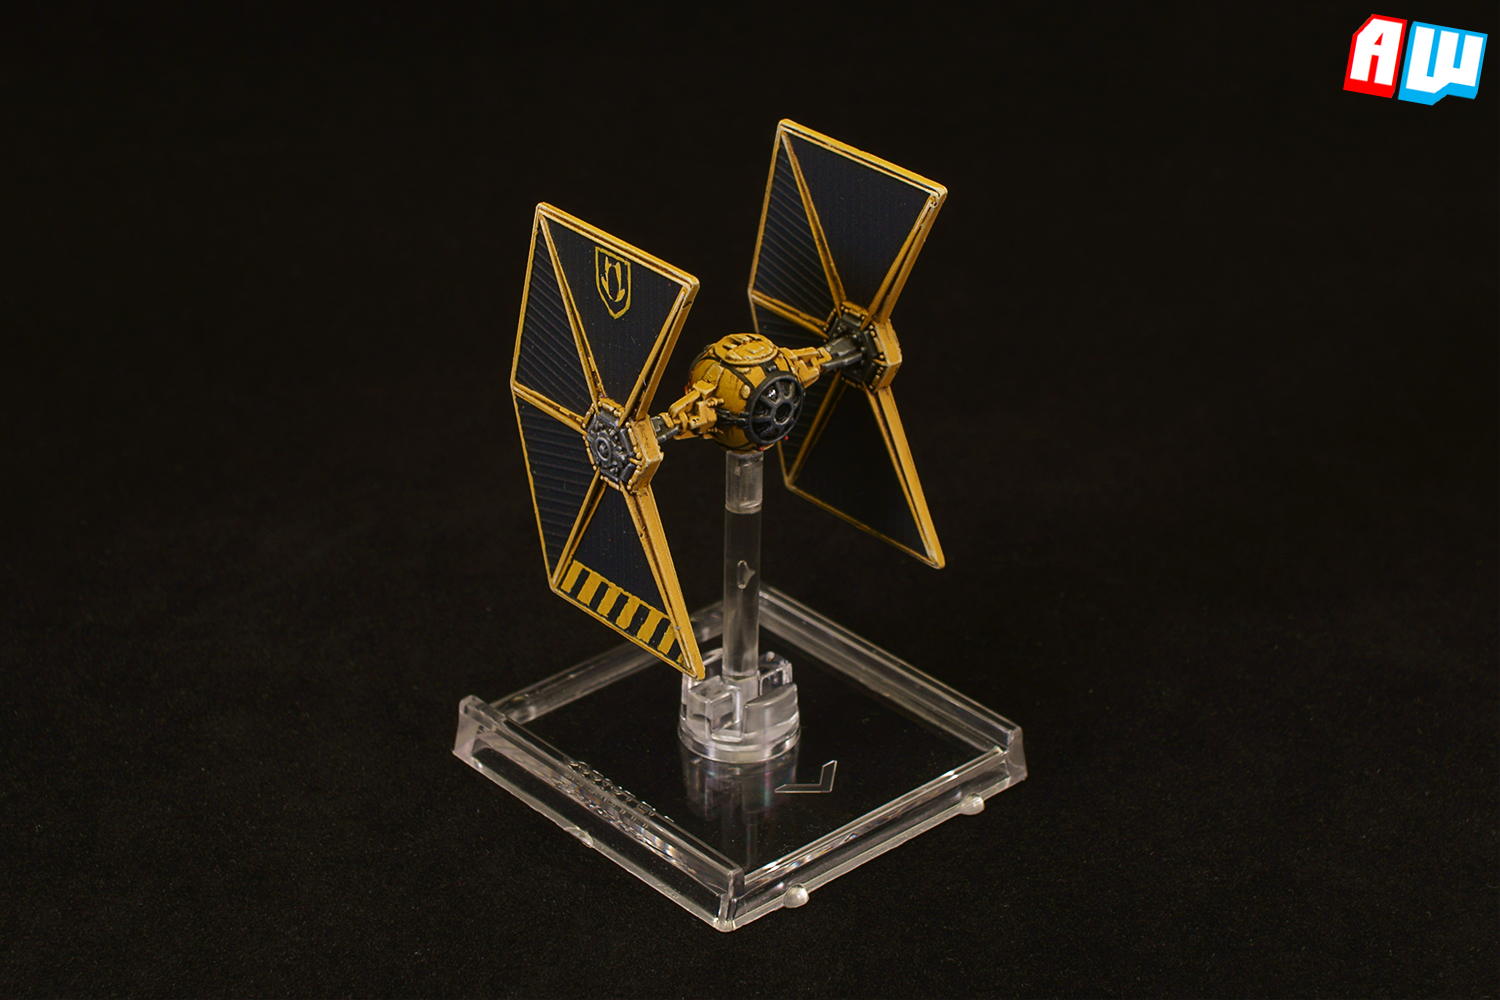 mining guild tie fighter photo - 1